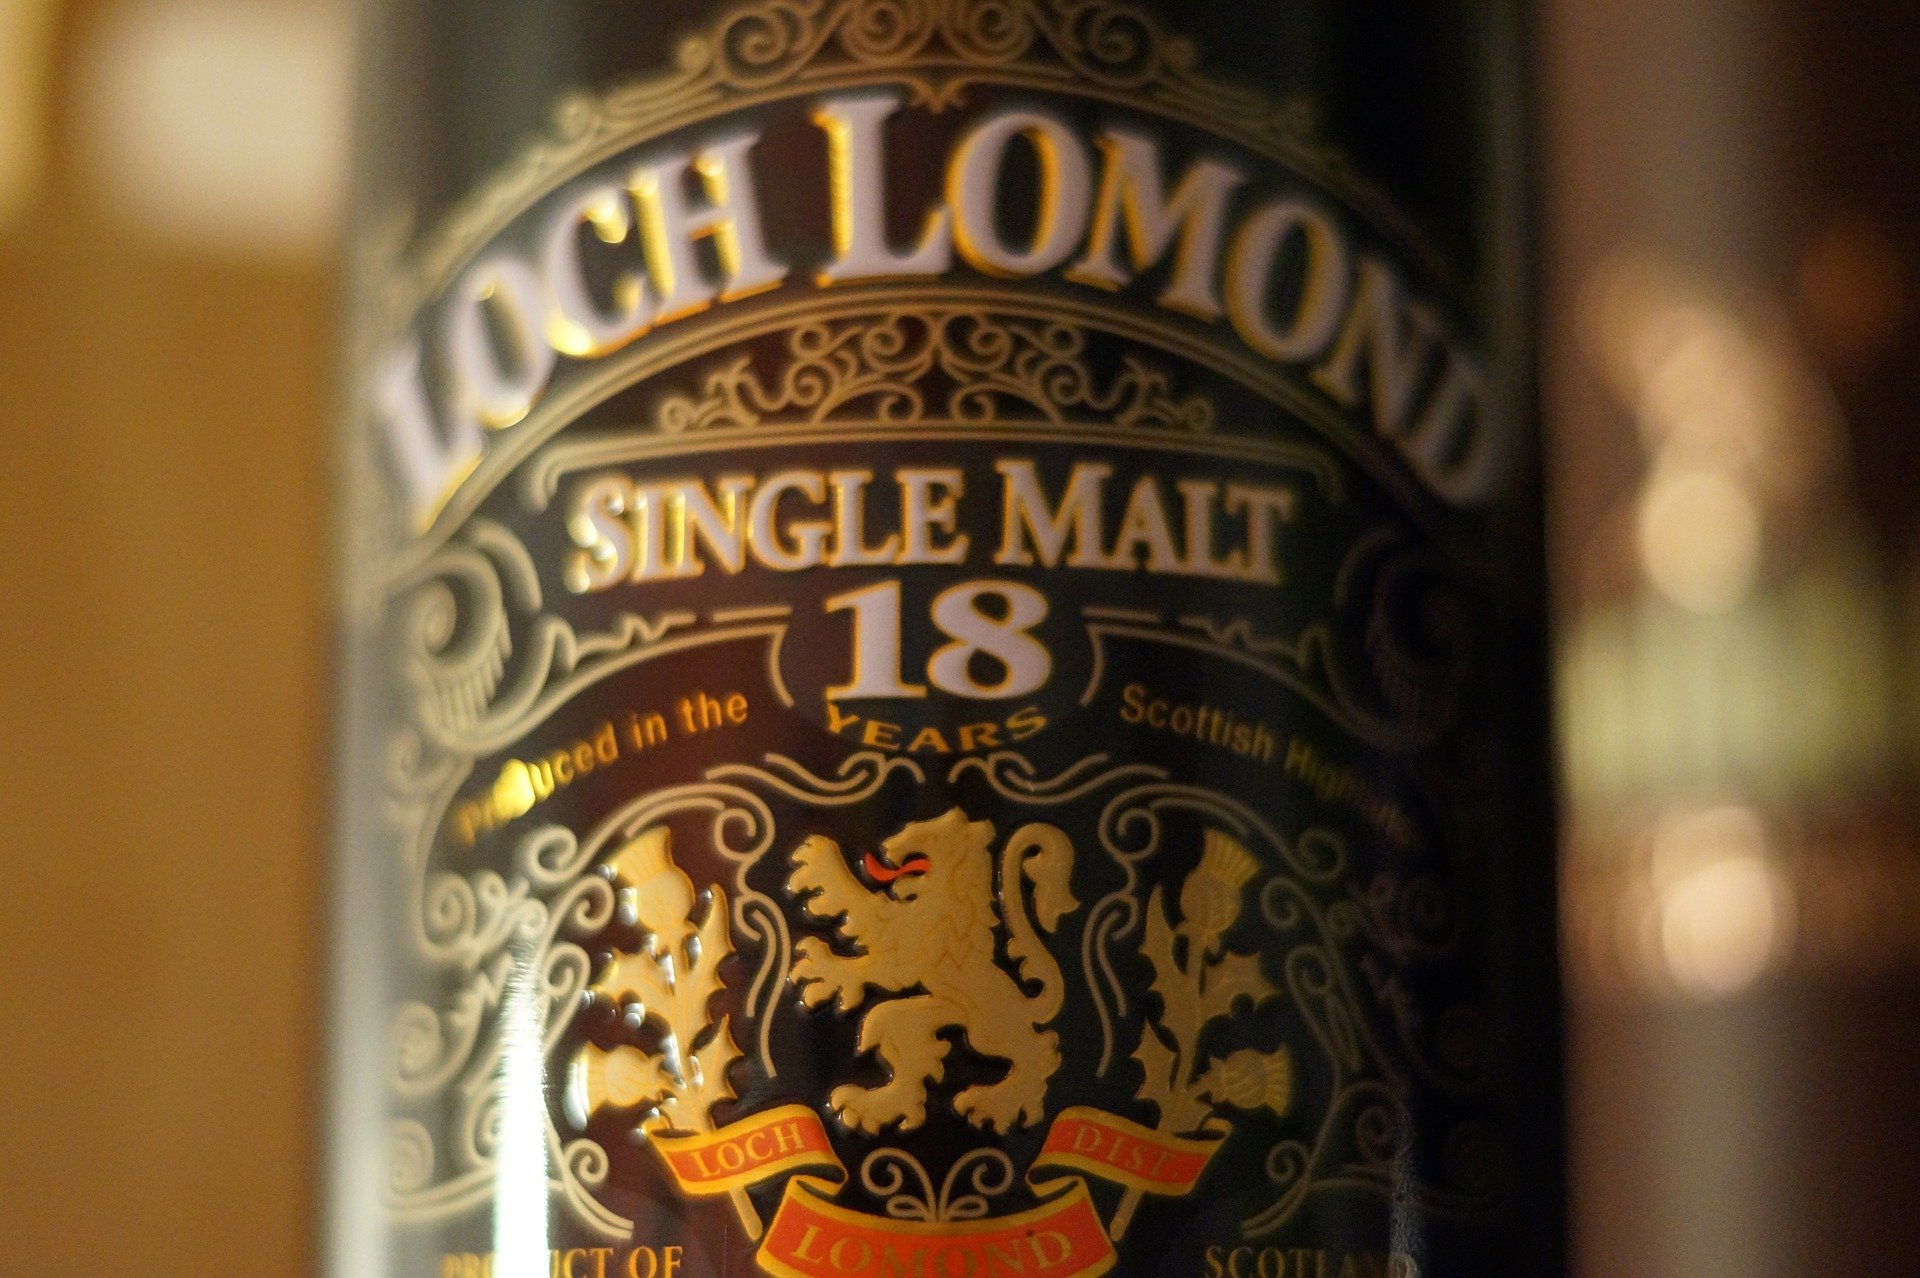 Loch Lomond whisky bottle